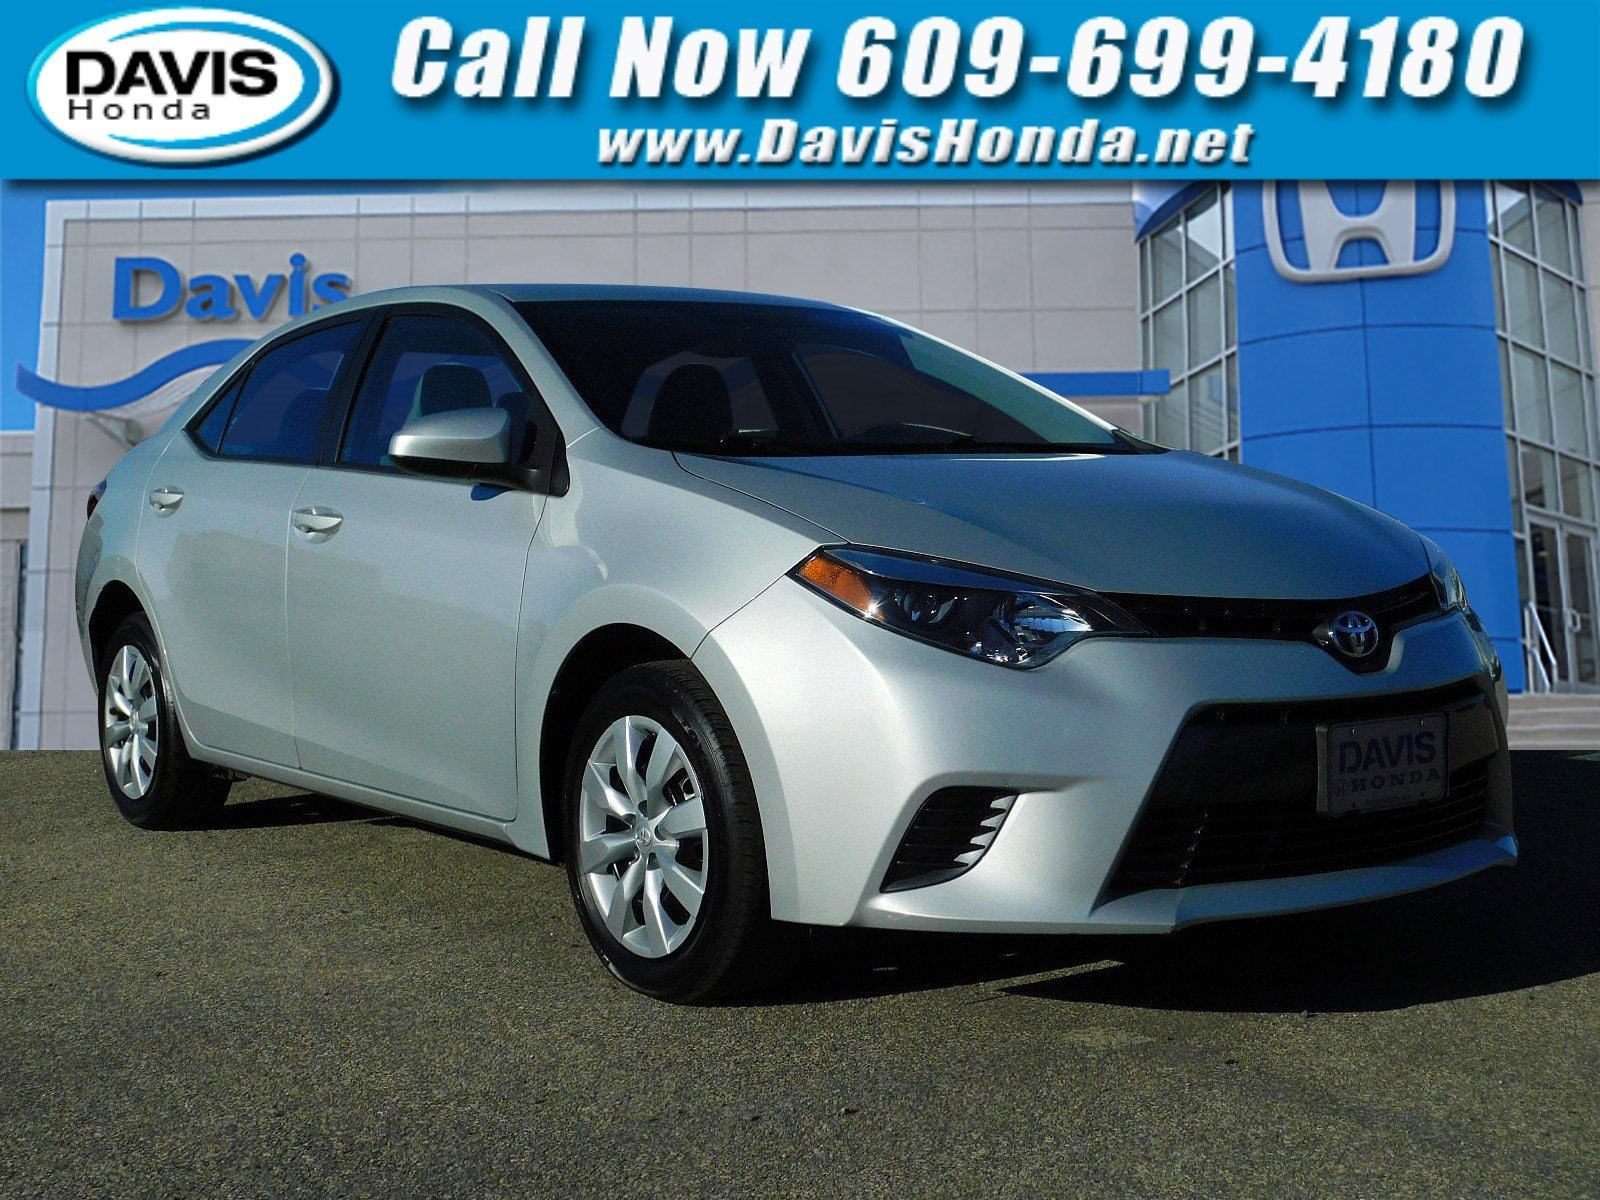 Used toyota Corolla for Sale Beautiful 2016 Used toyota Corolla for Sale at Davis Hyundai In Ewing Nj